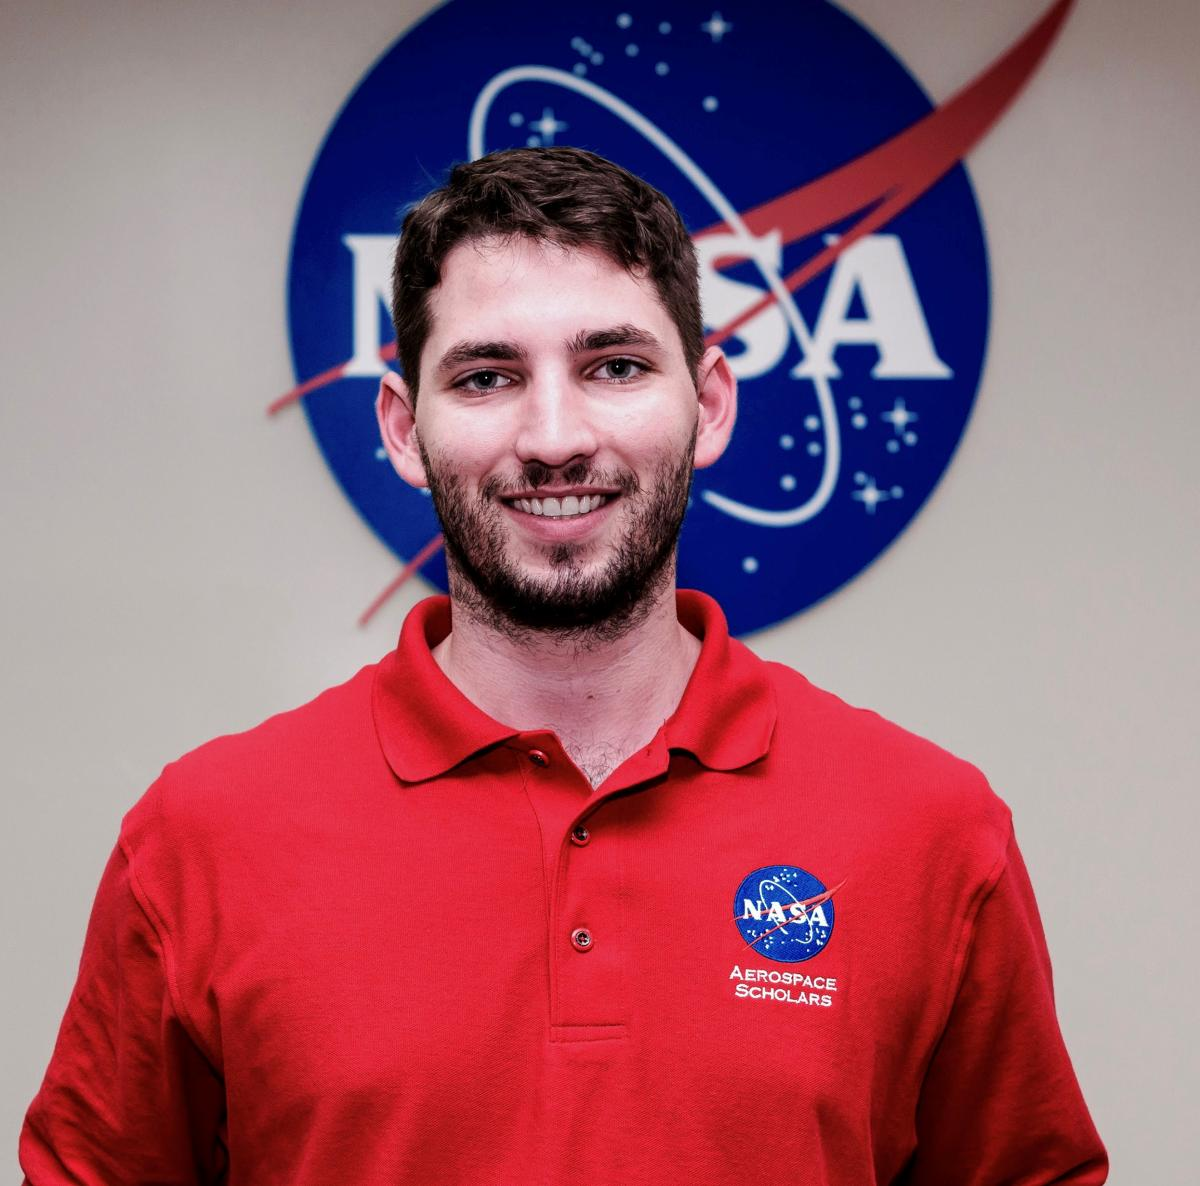 Matt Rockwell and NASA Logo